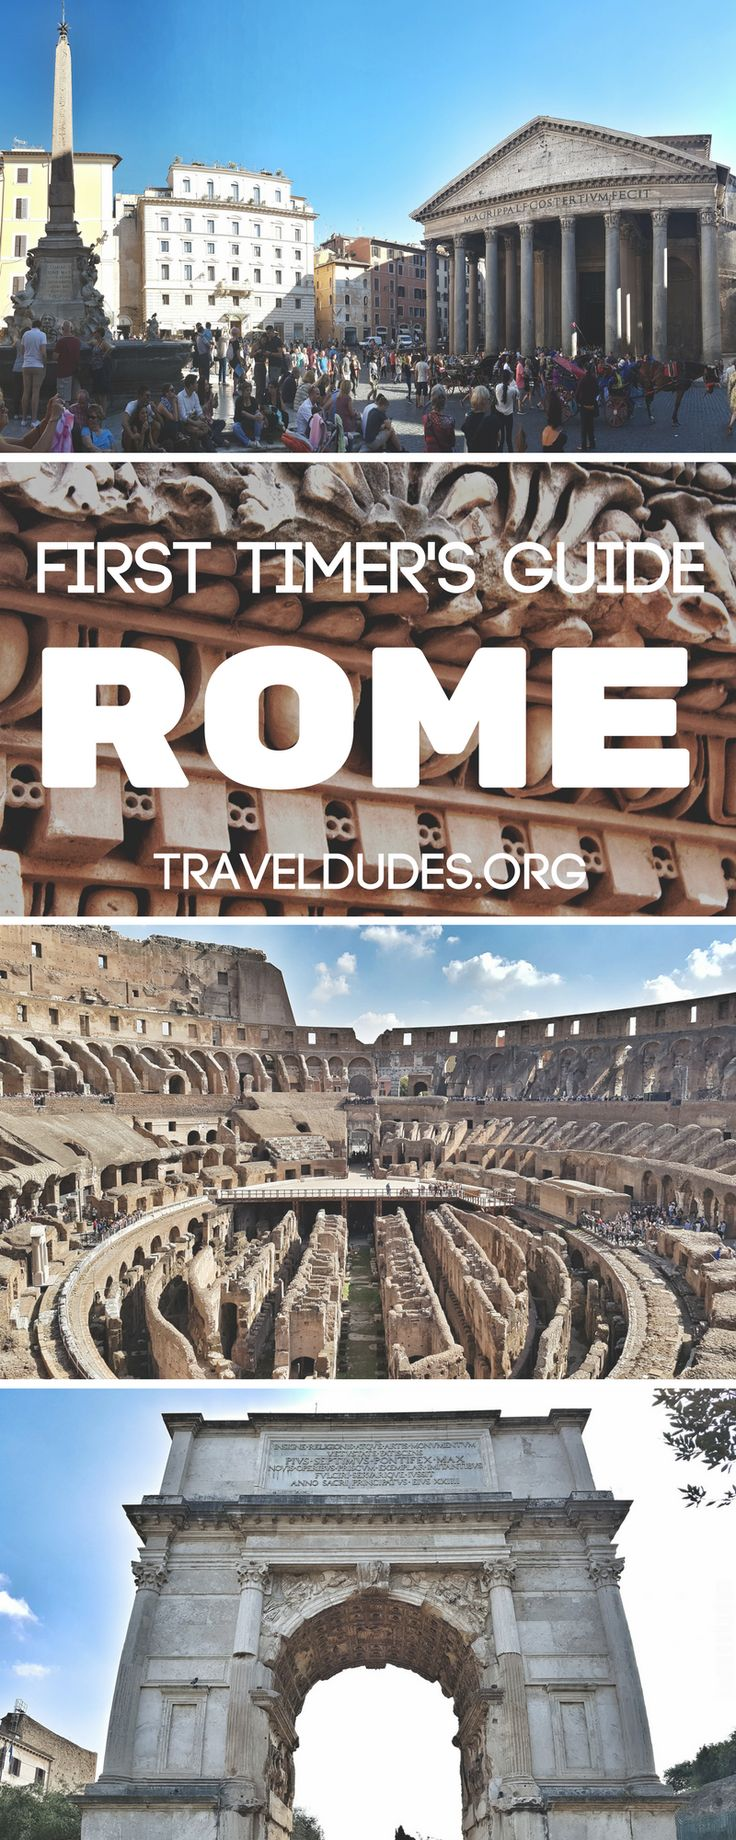 There are endless things to do in Rome, Italy and it can be overwhelming to figure out how to prioritize your time on a first time visit to the eternal city. This beginner's guide to Rome includes all of the must-see attractions and experiences that one should see over three or four days in the city, as well as insider tips and tricks to save time and money along the way. Travel in Italy. Travel Dudes Social Travel Community #Rome #Italy